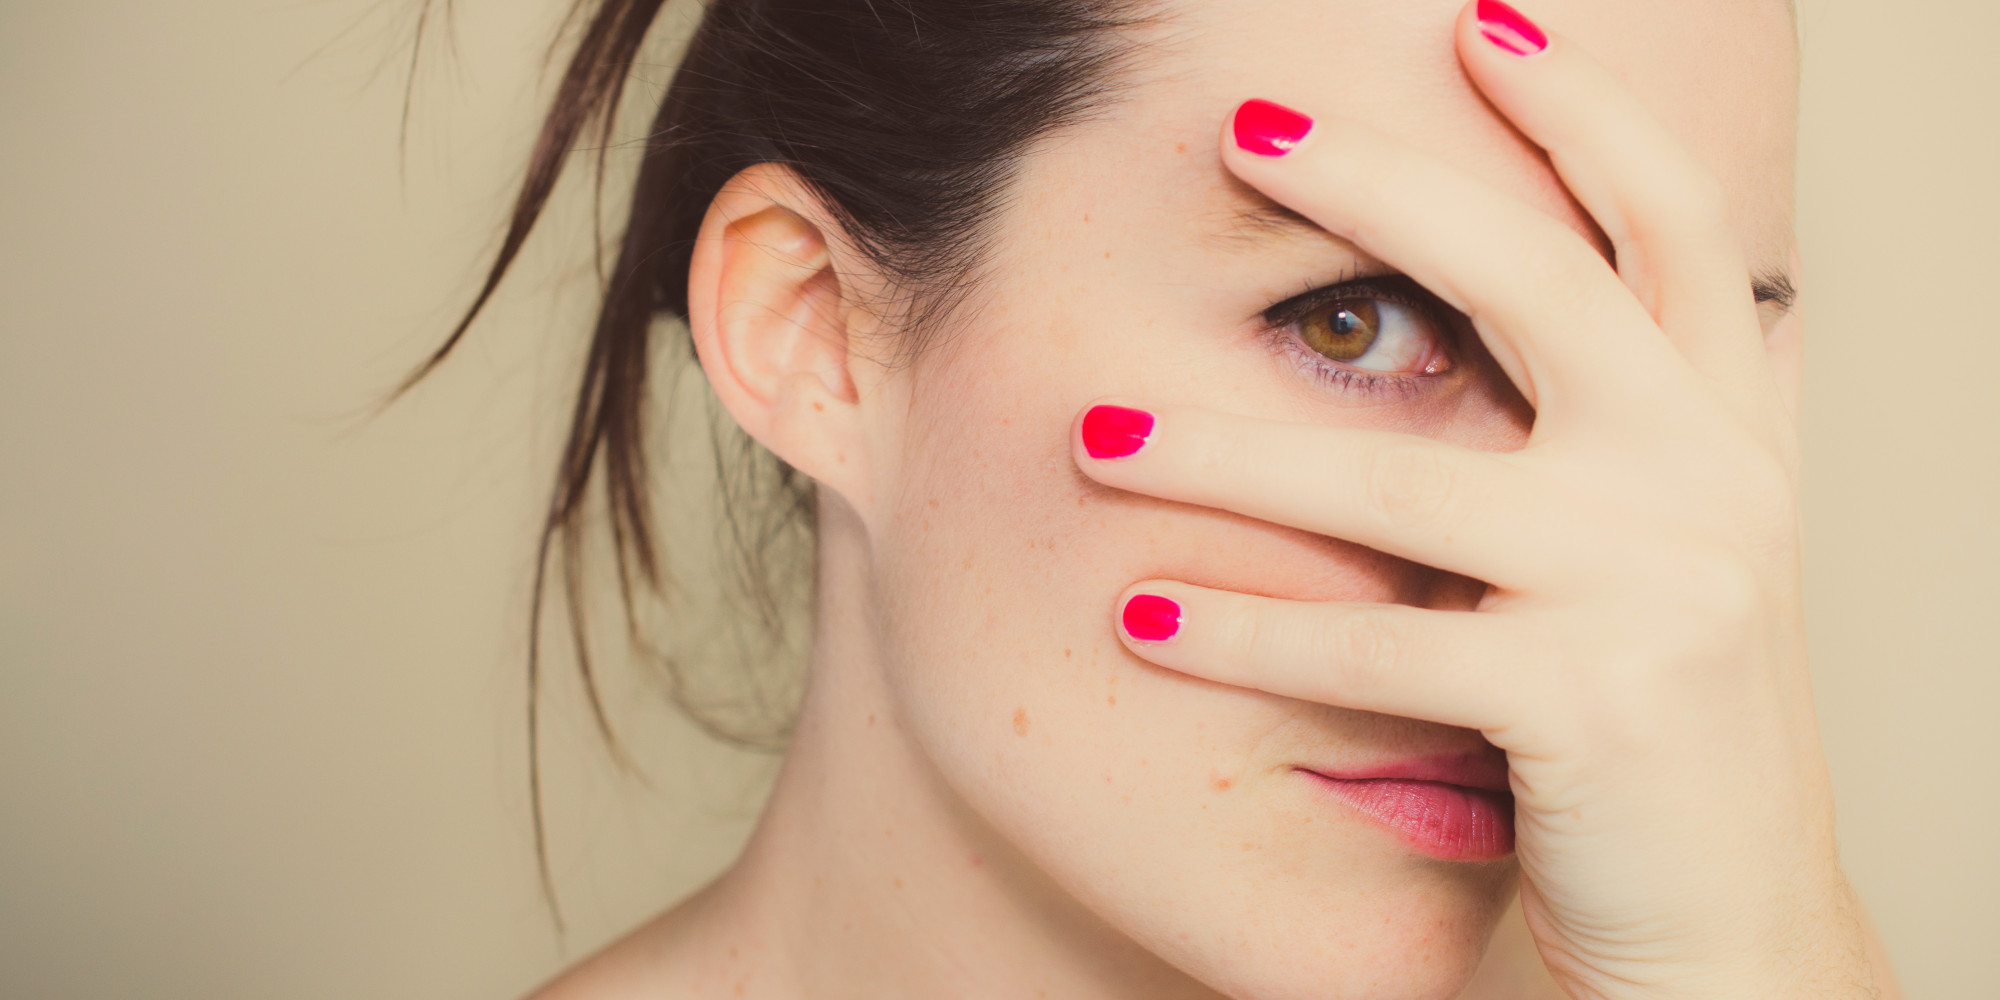 Misterious girl with red nails and hand on face.